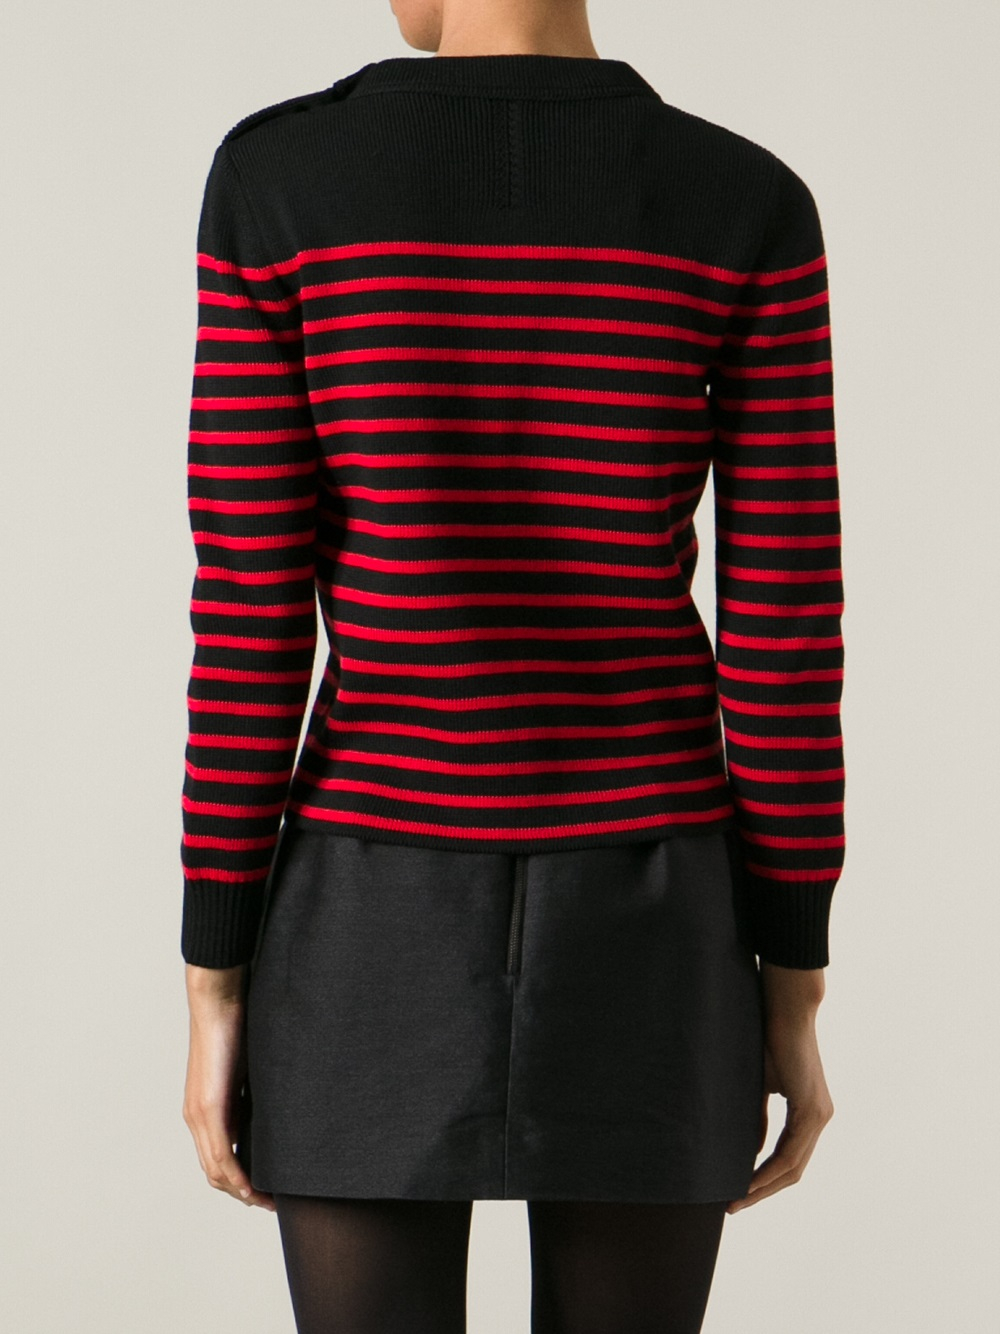 Saint laurent Sailor Knit Sweater in Red Lyst